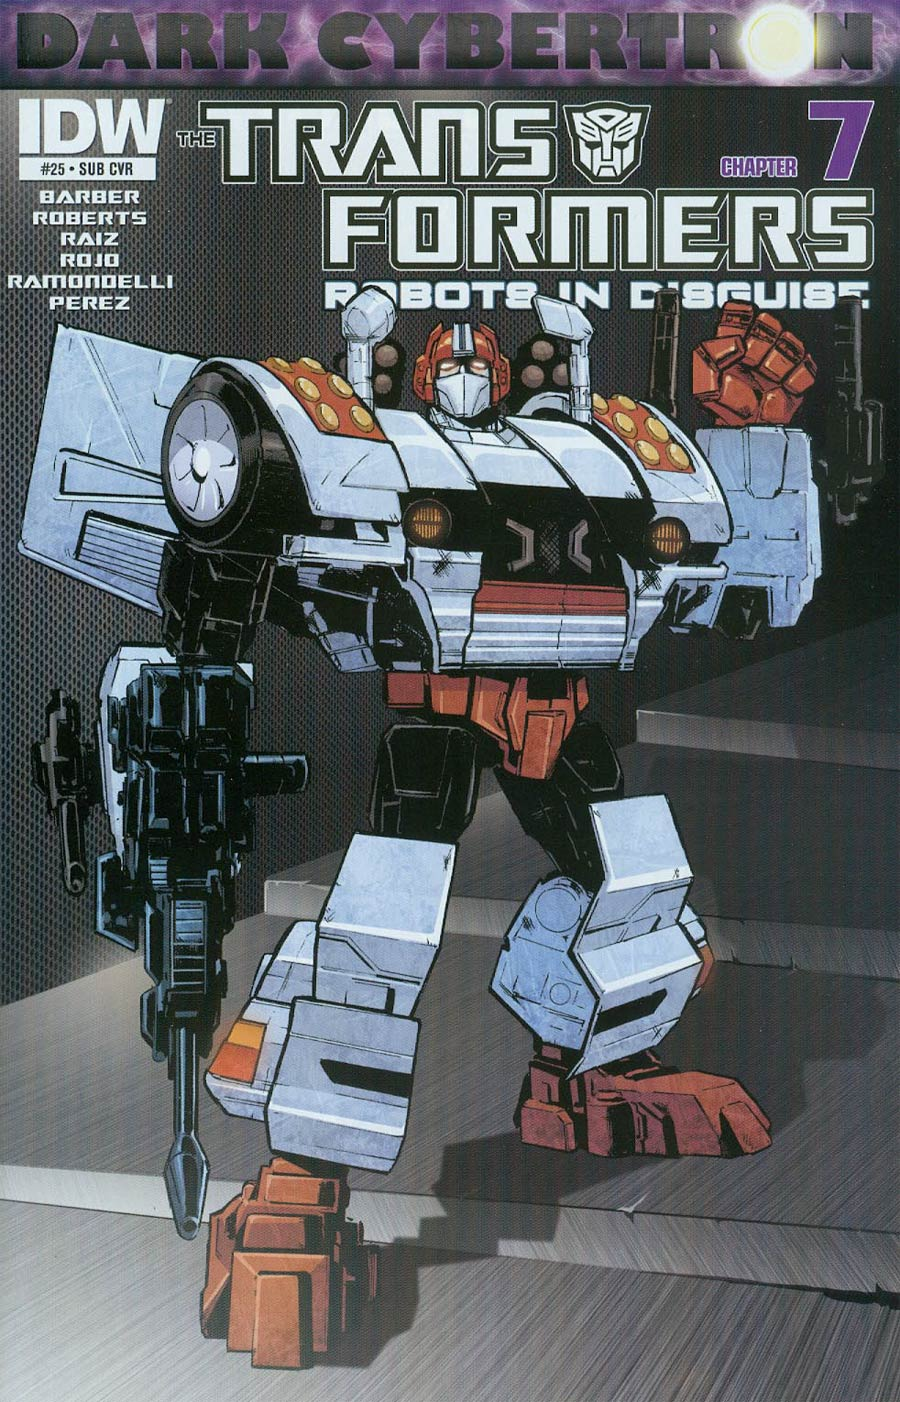 Transformers Robots In Disguise #25 Cover B Variant Phil Jimenez Subscription Cover (Dark Cybertron Part 7)